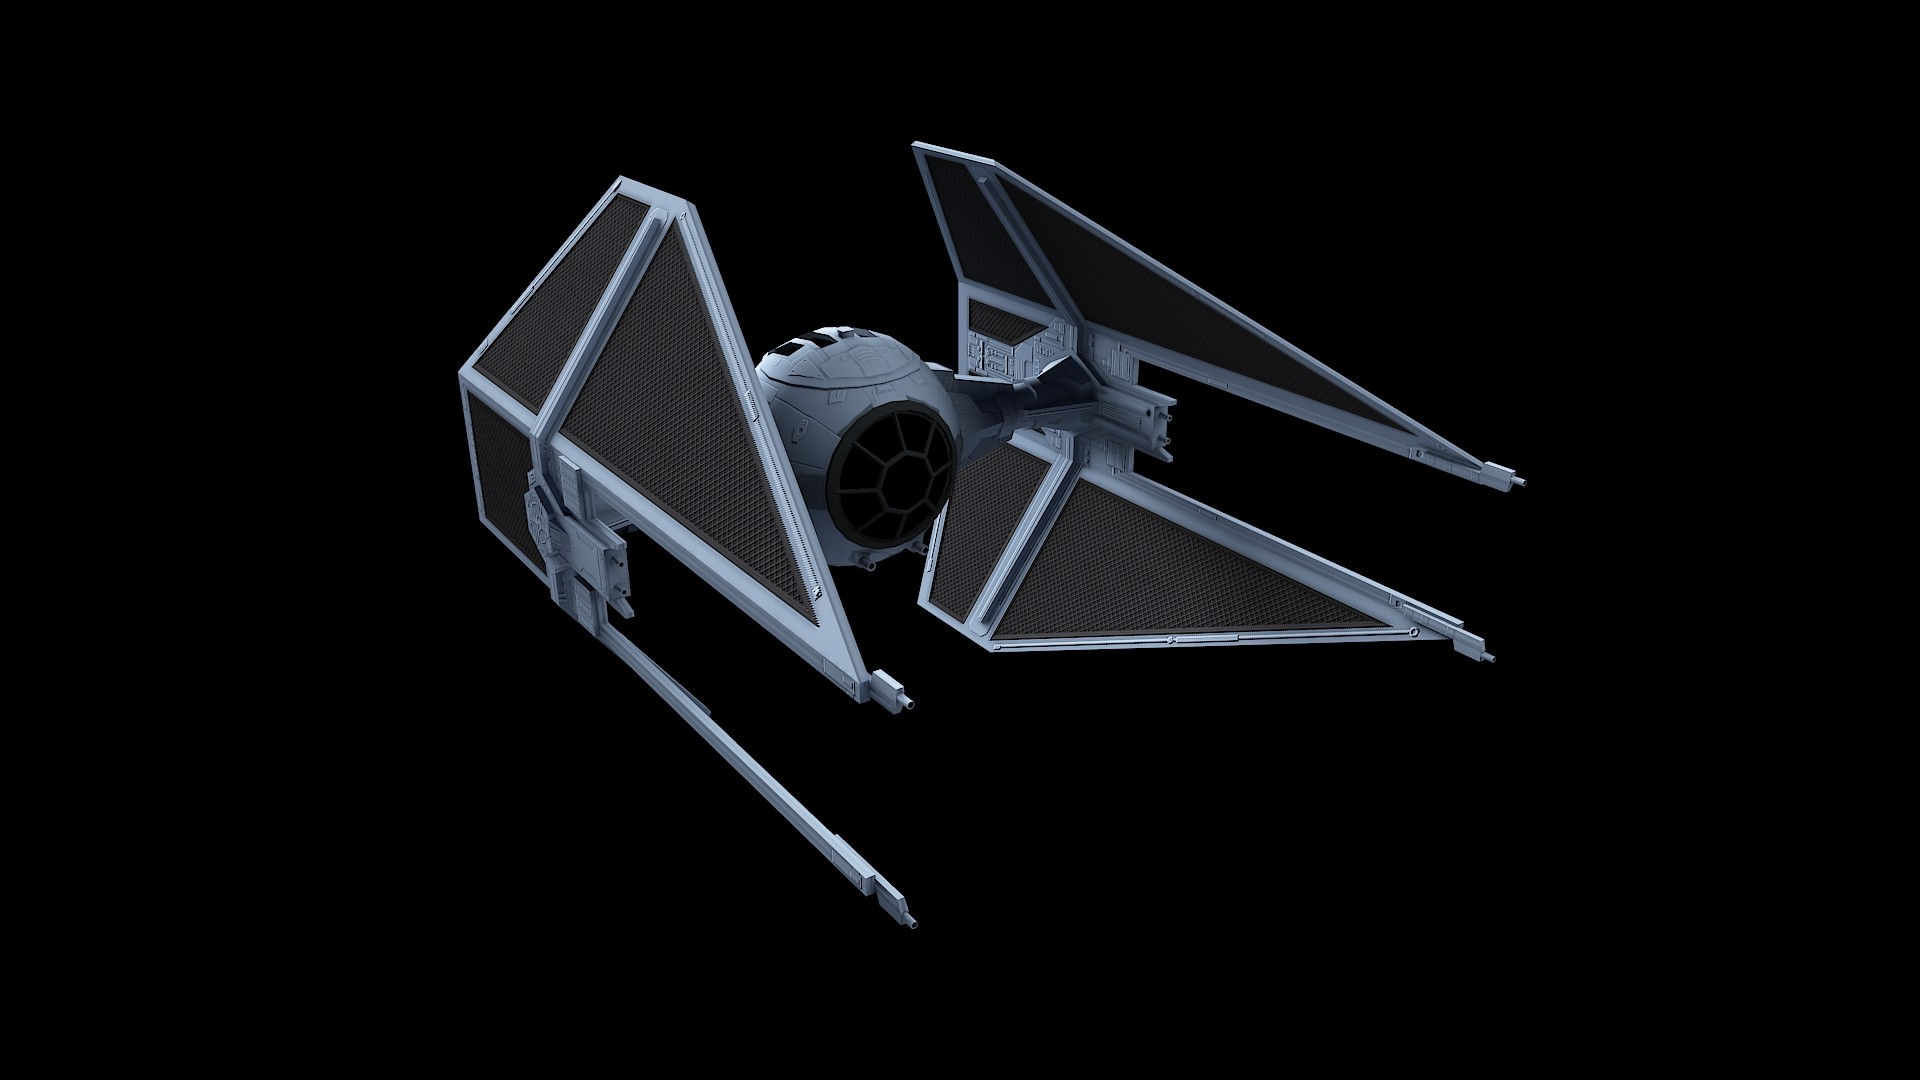 Free Download Star Wars Tie Fighter Hd Wallpapers Backgrounds